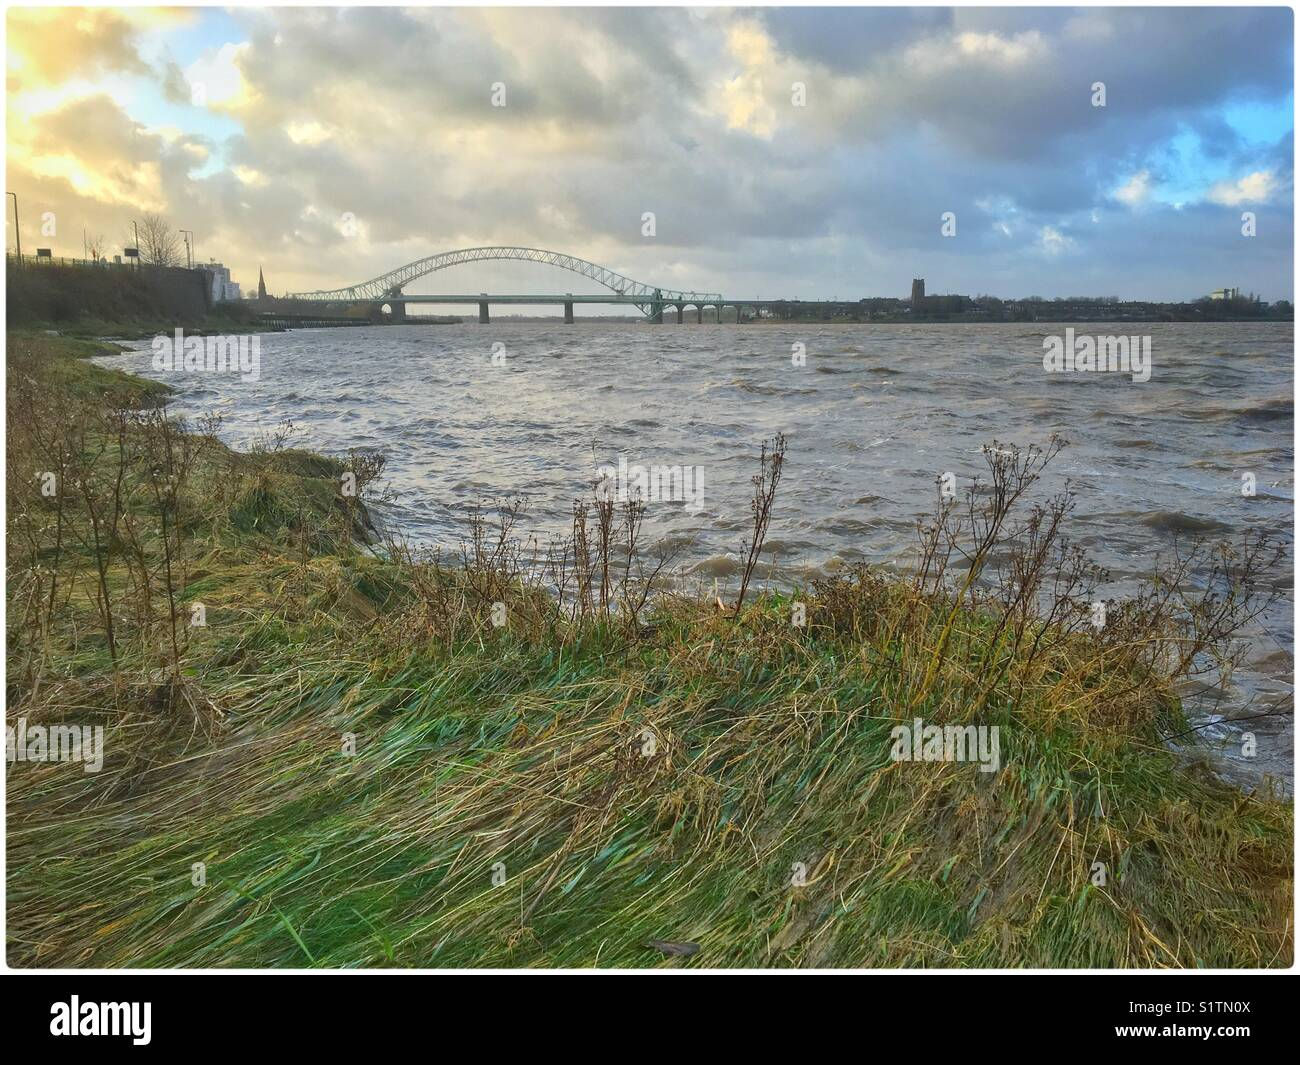 Standing on Wigg Island looking across the River Mersey at the old Runcorn Jubilee bridge - Stock Image